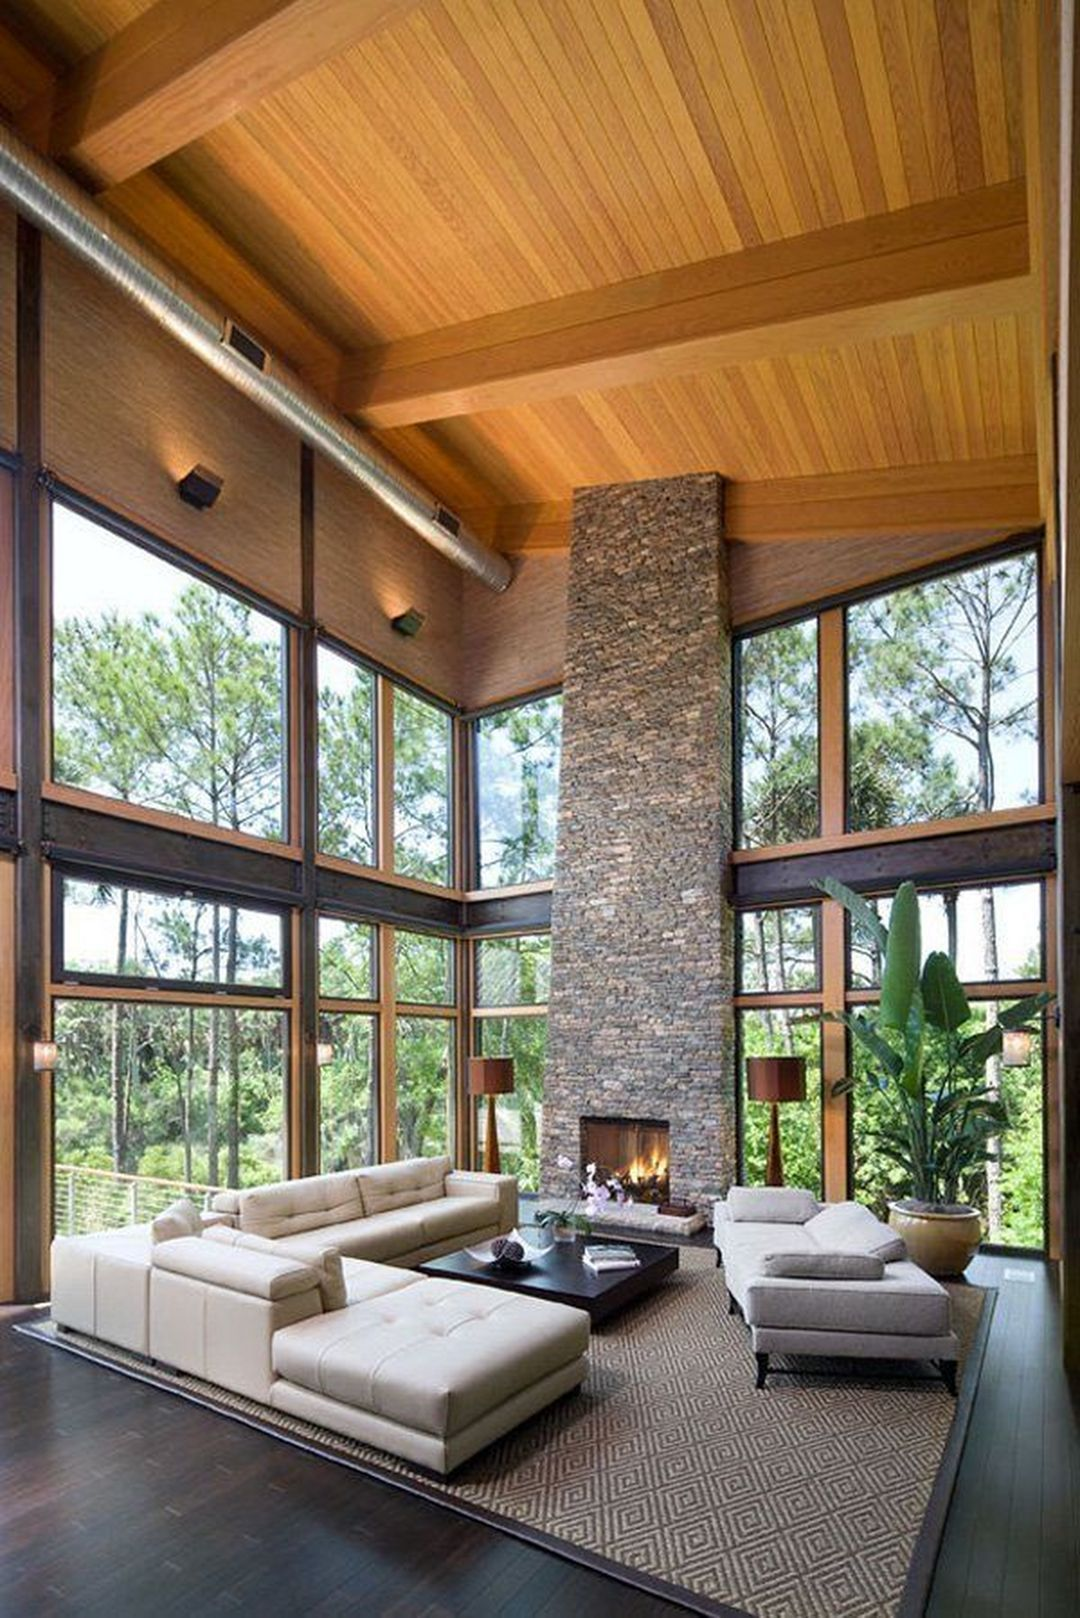 Awesome 35 Gorgeous Luxurious Living Room Design For Luxury Home Ideas Https Decorathing Com Living Room Ideas 35 Gorgeous Lu House Design House Glass House